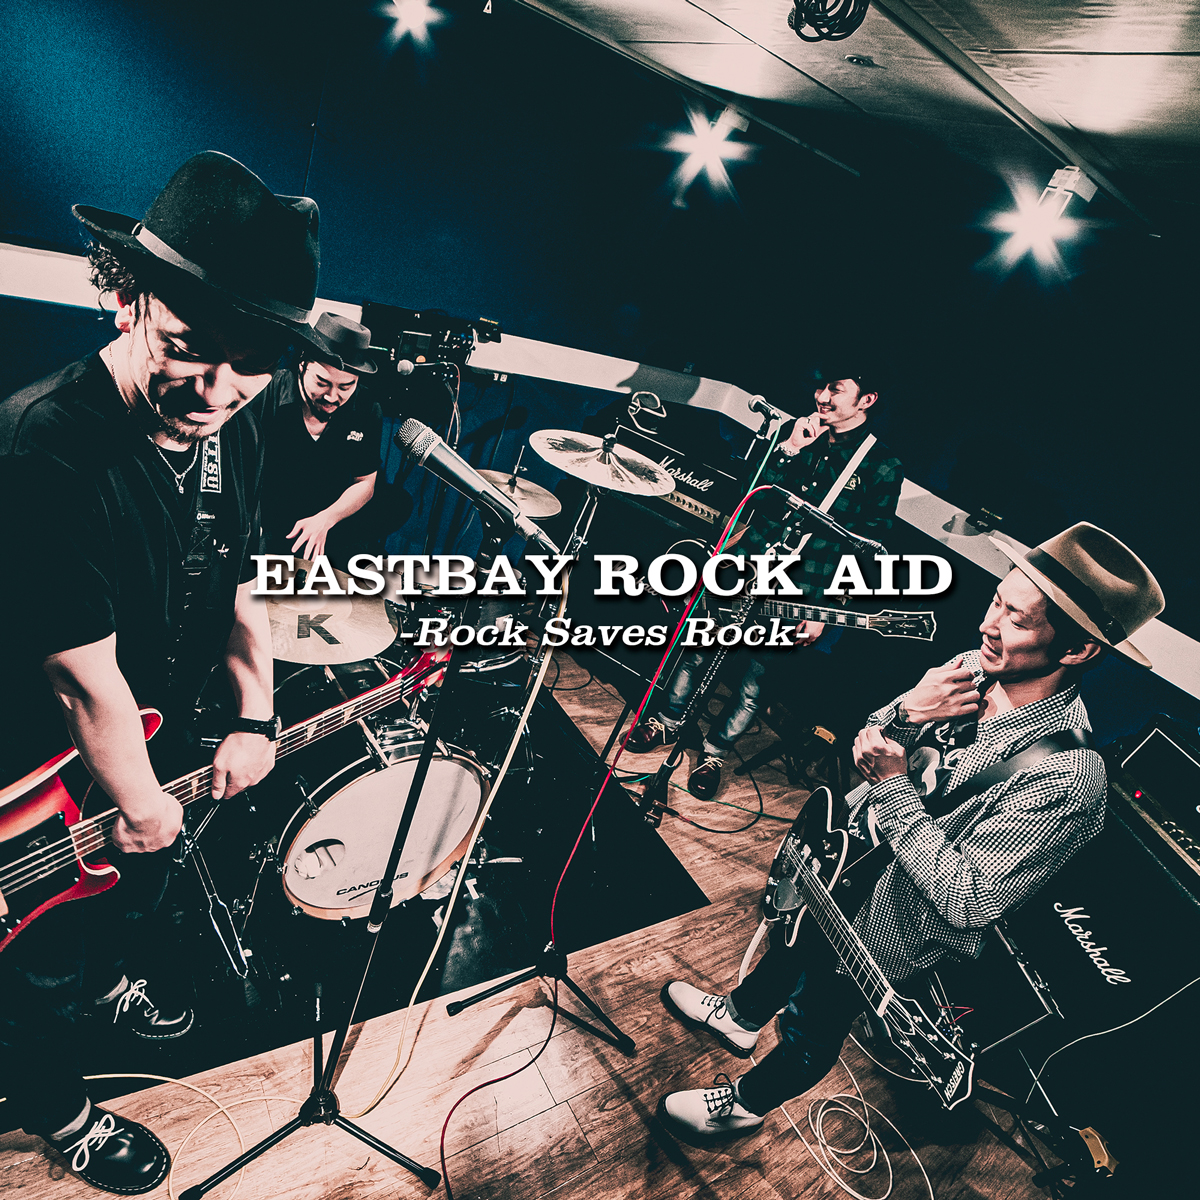 EASTBAY Charity Project【ROCK AID -Rock Saves Rock-】のジャケット